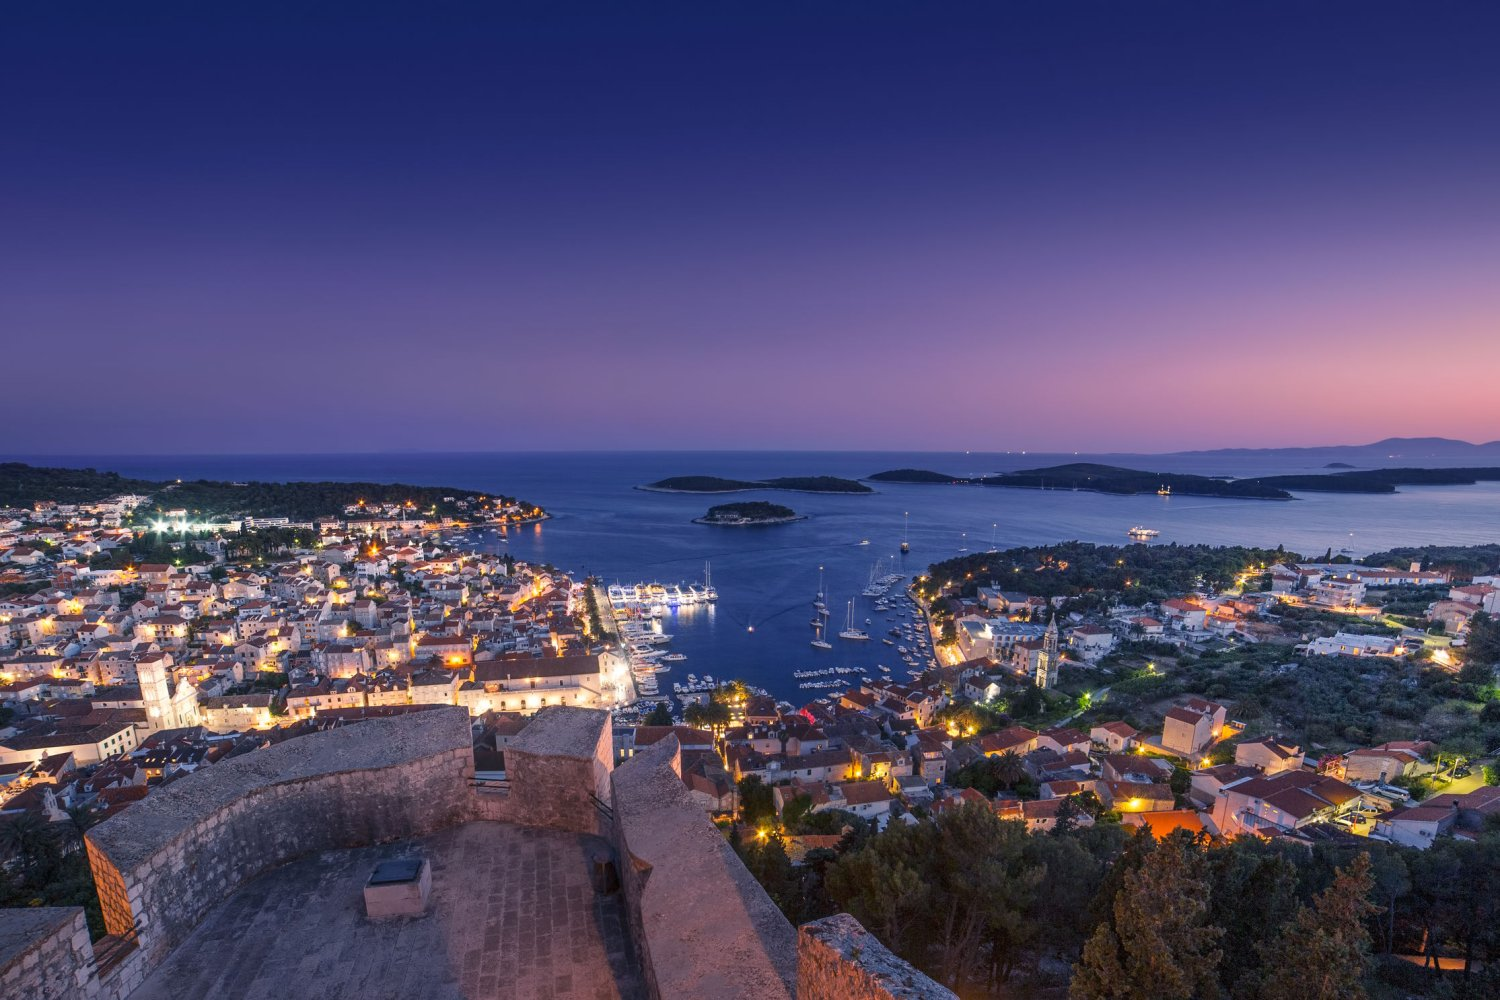 Croatian Island Hvar, View of Hvar Town